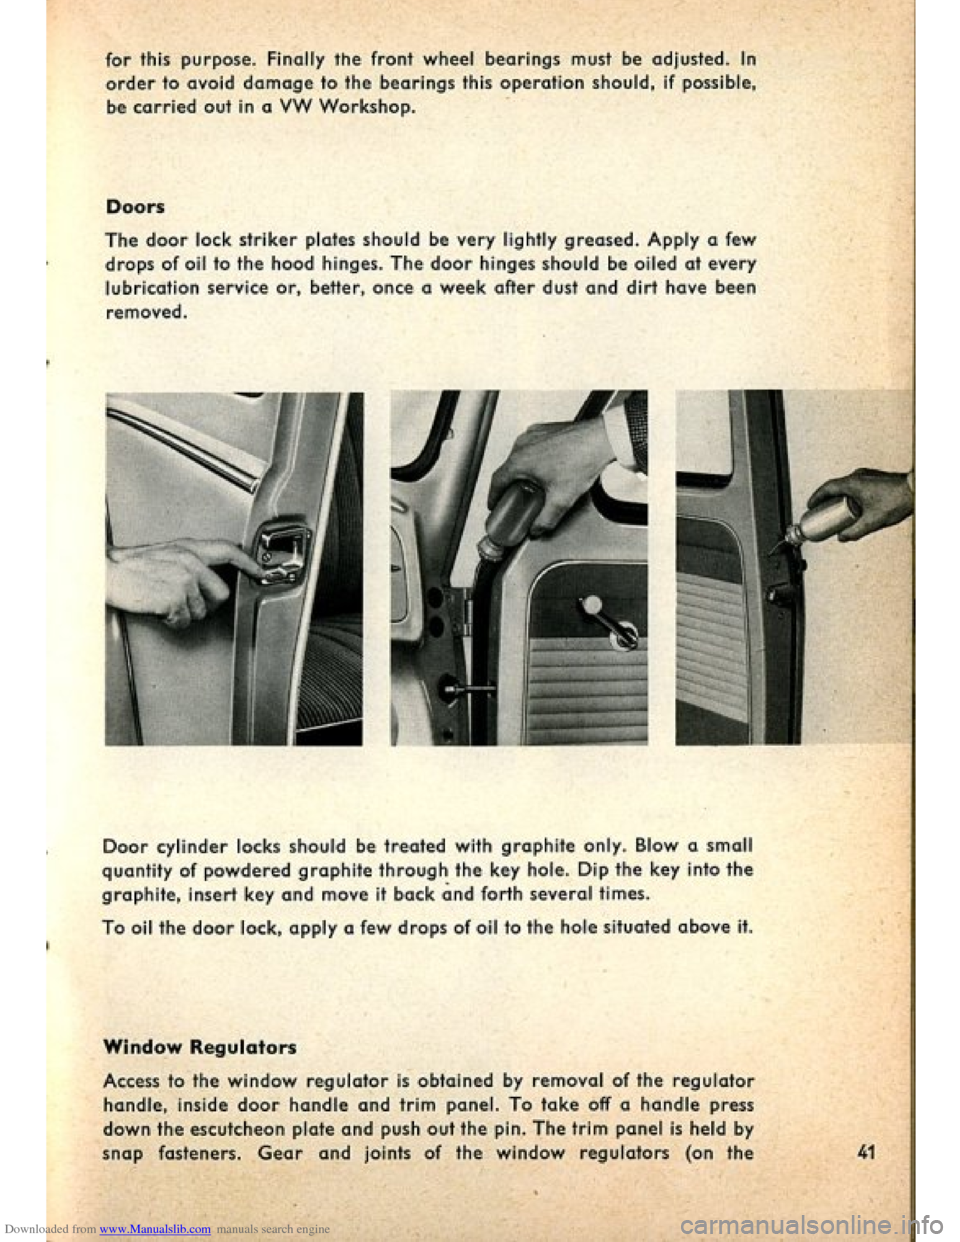 VOLKSWAGEN BEETLE 1960 1.G Owners Manual, Page 43